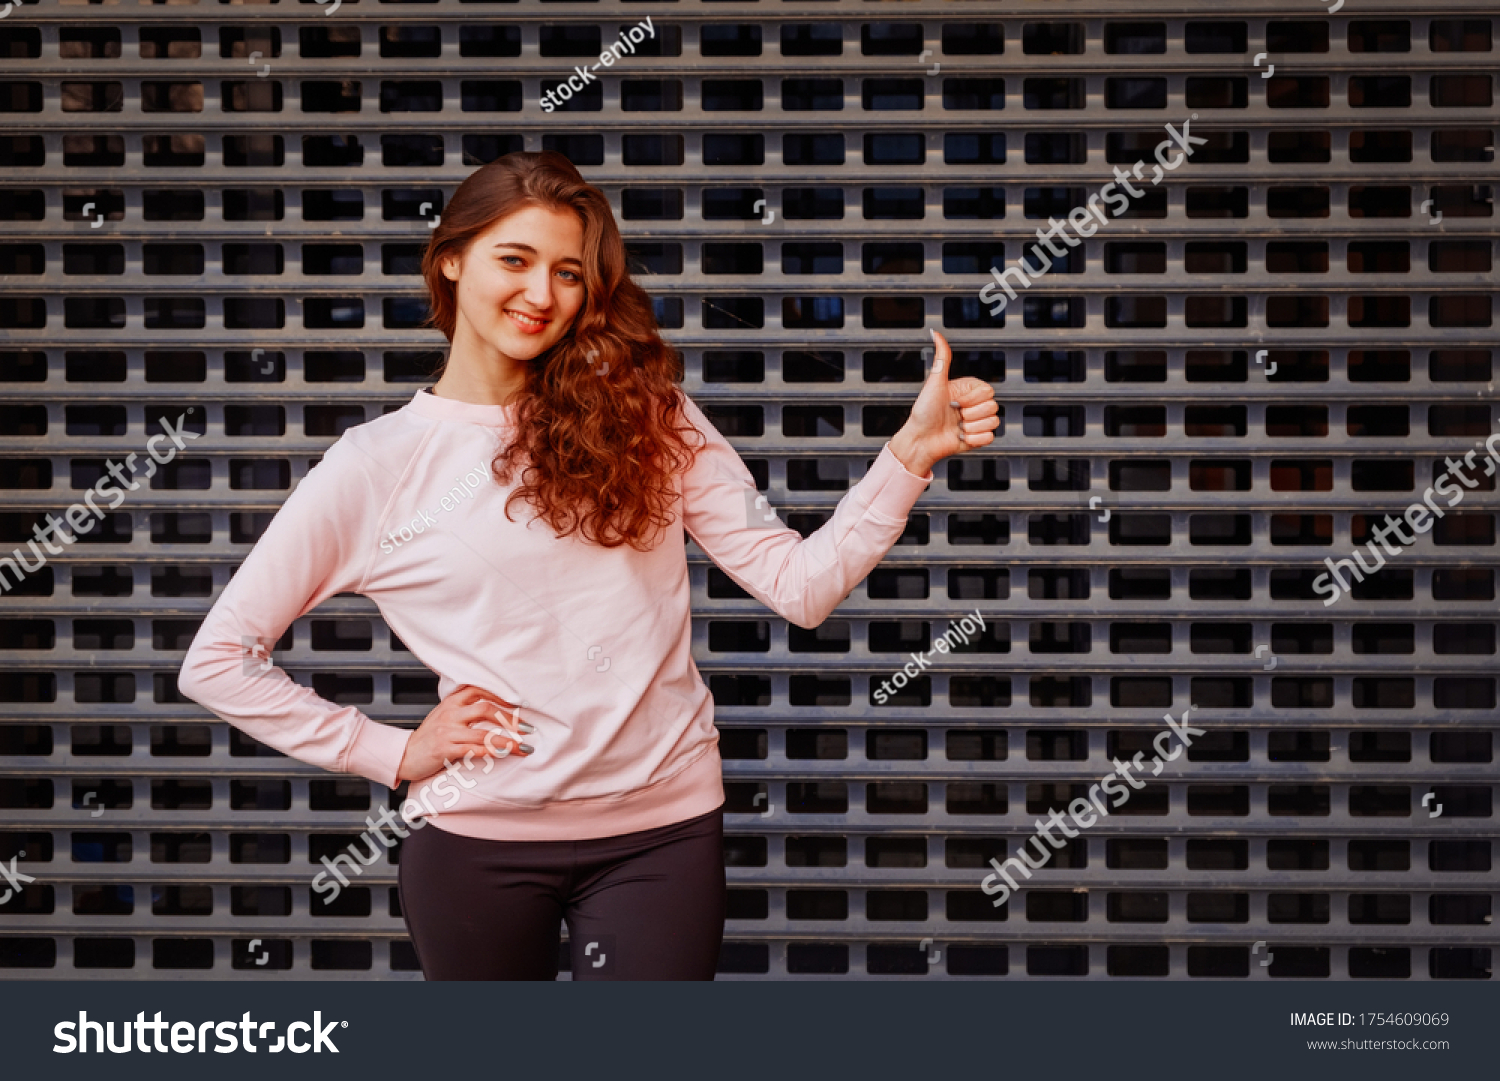 Happy redhead girl shows us thumb up sign in front of metal grid